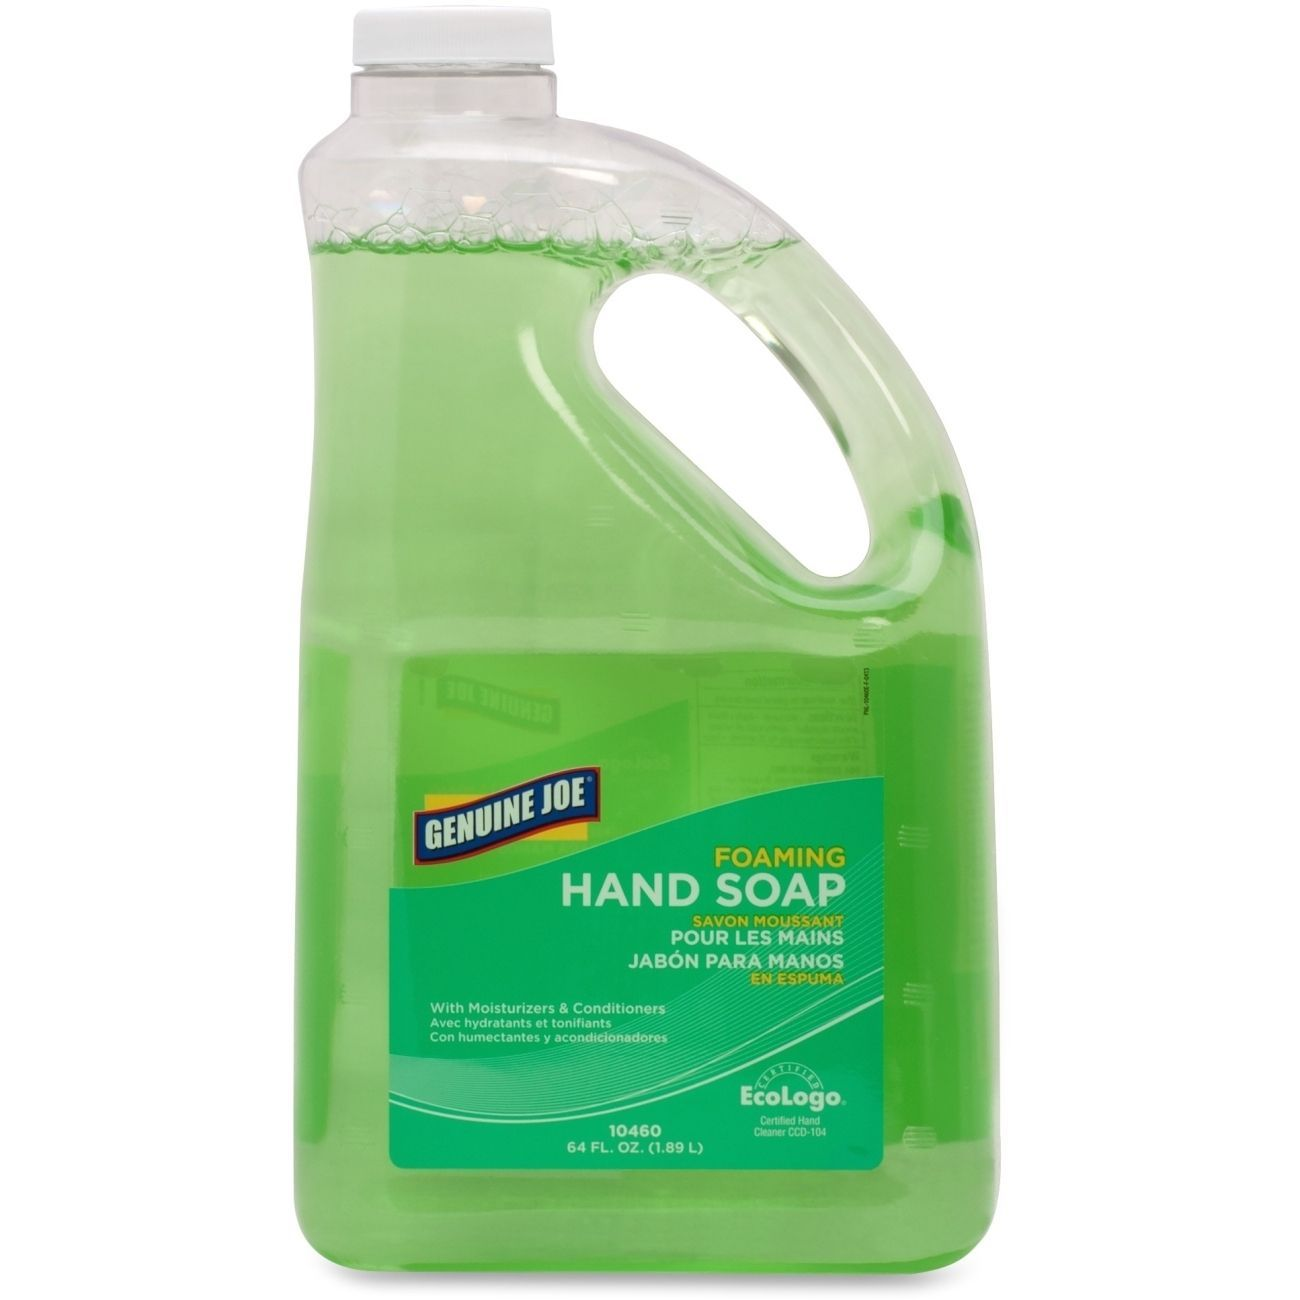 Genuine Joe Foaming Hand Soap Master Green Liquid Hand Soap